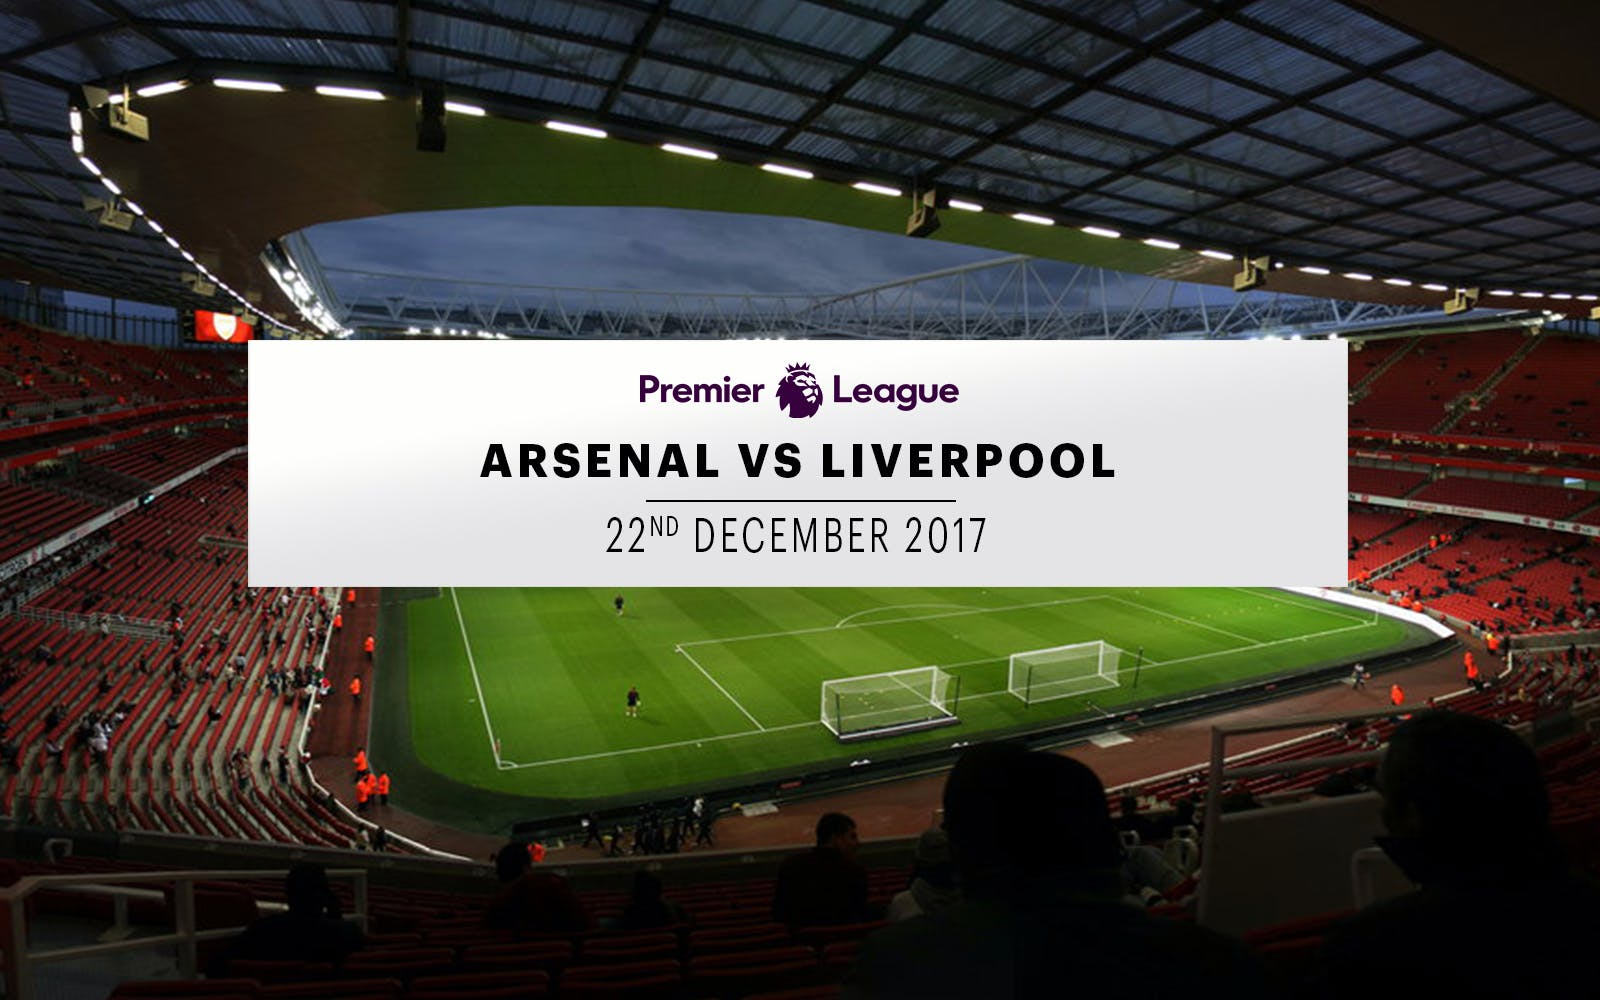 arsenal vs liverpool - 22nd december 2017-1